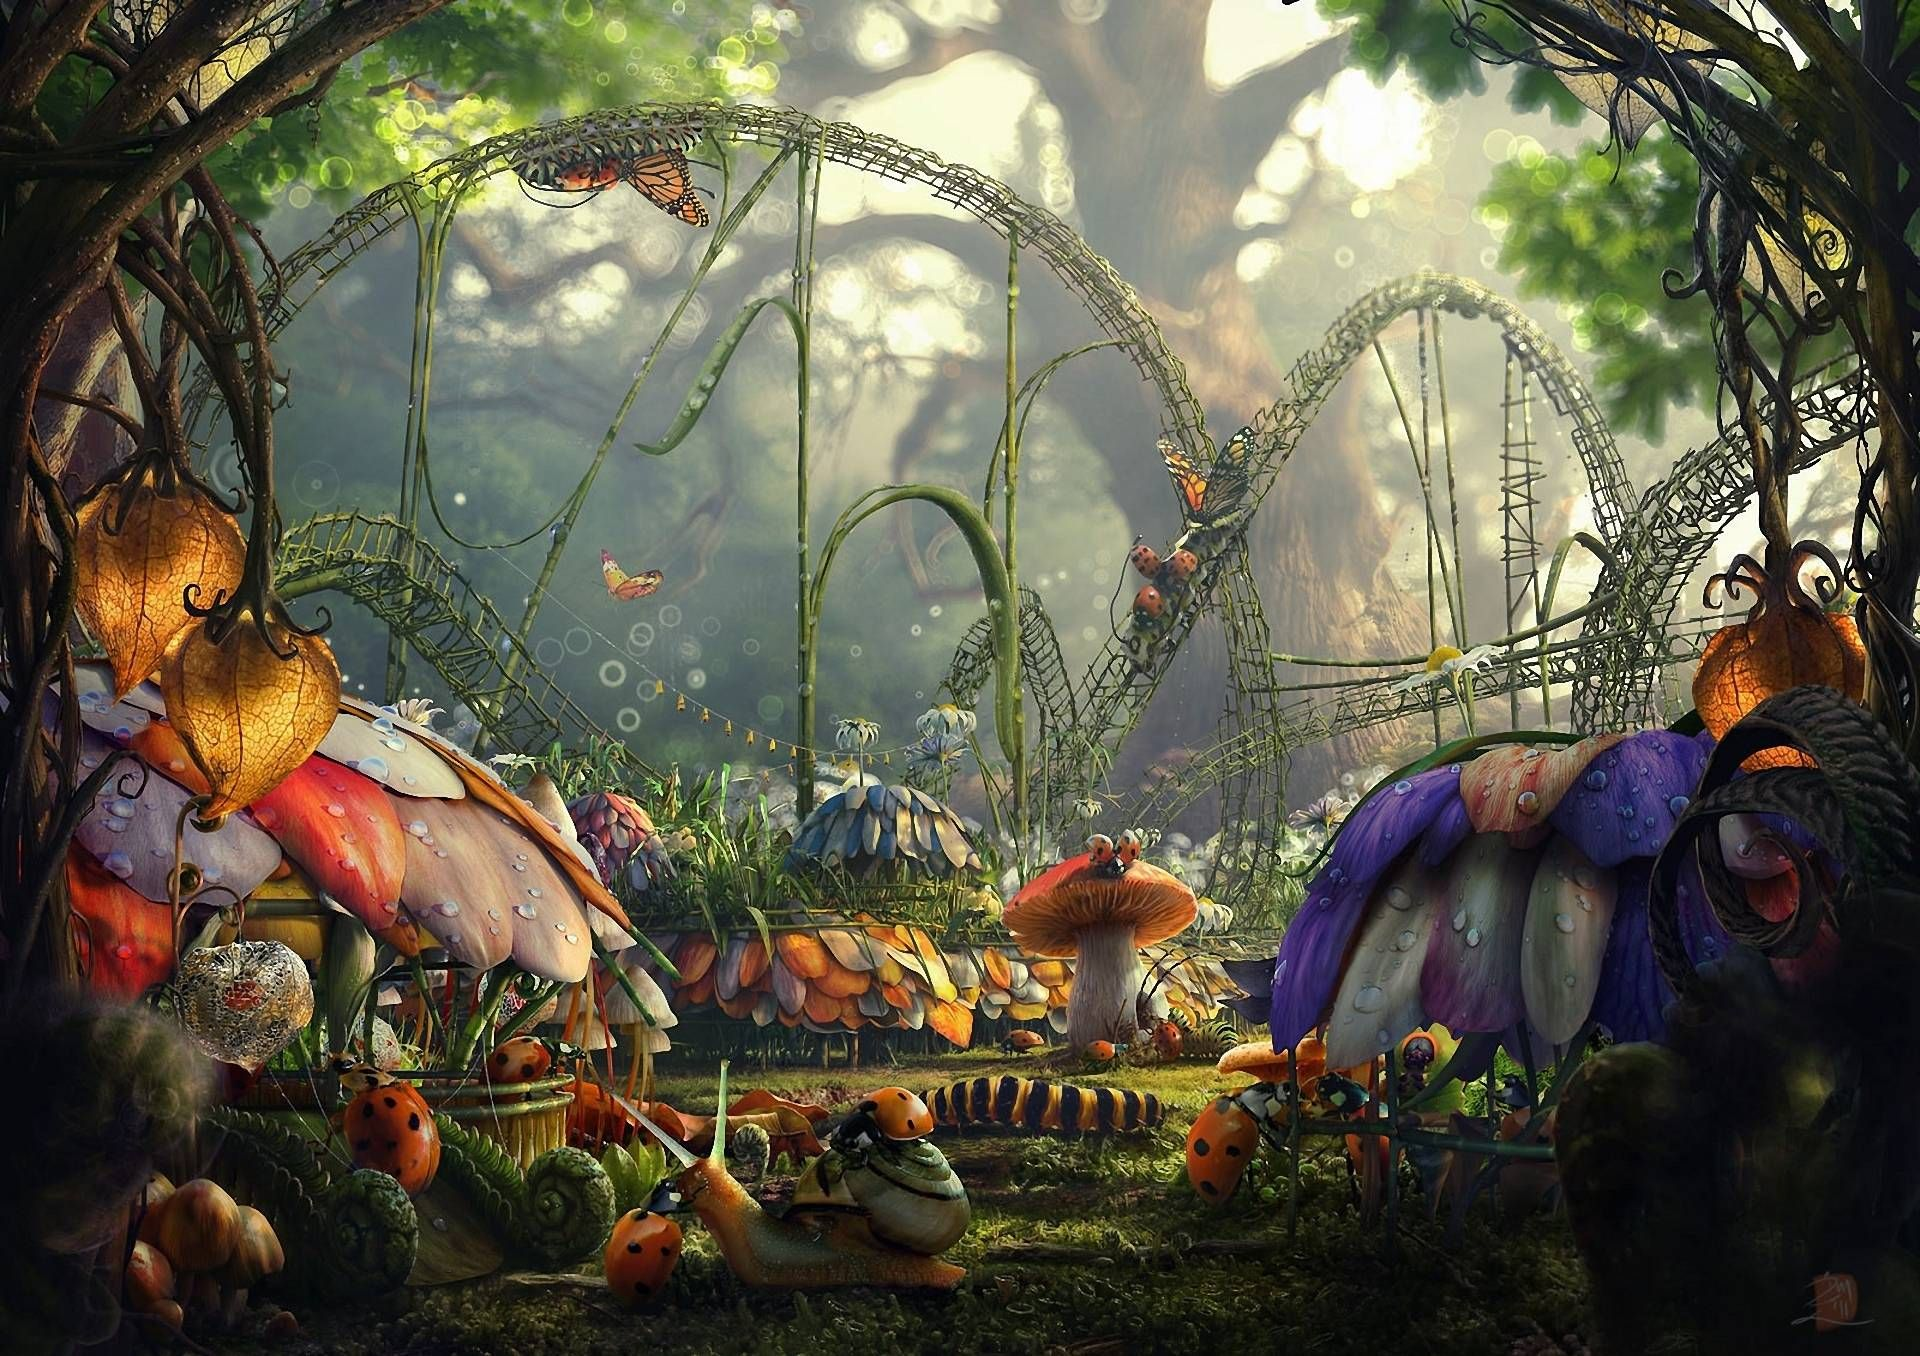 Fantasy Photoshop Premade Backgrounds PSDDude 1920x1080 Fairytale 35 Wallpapers